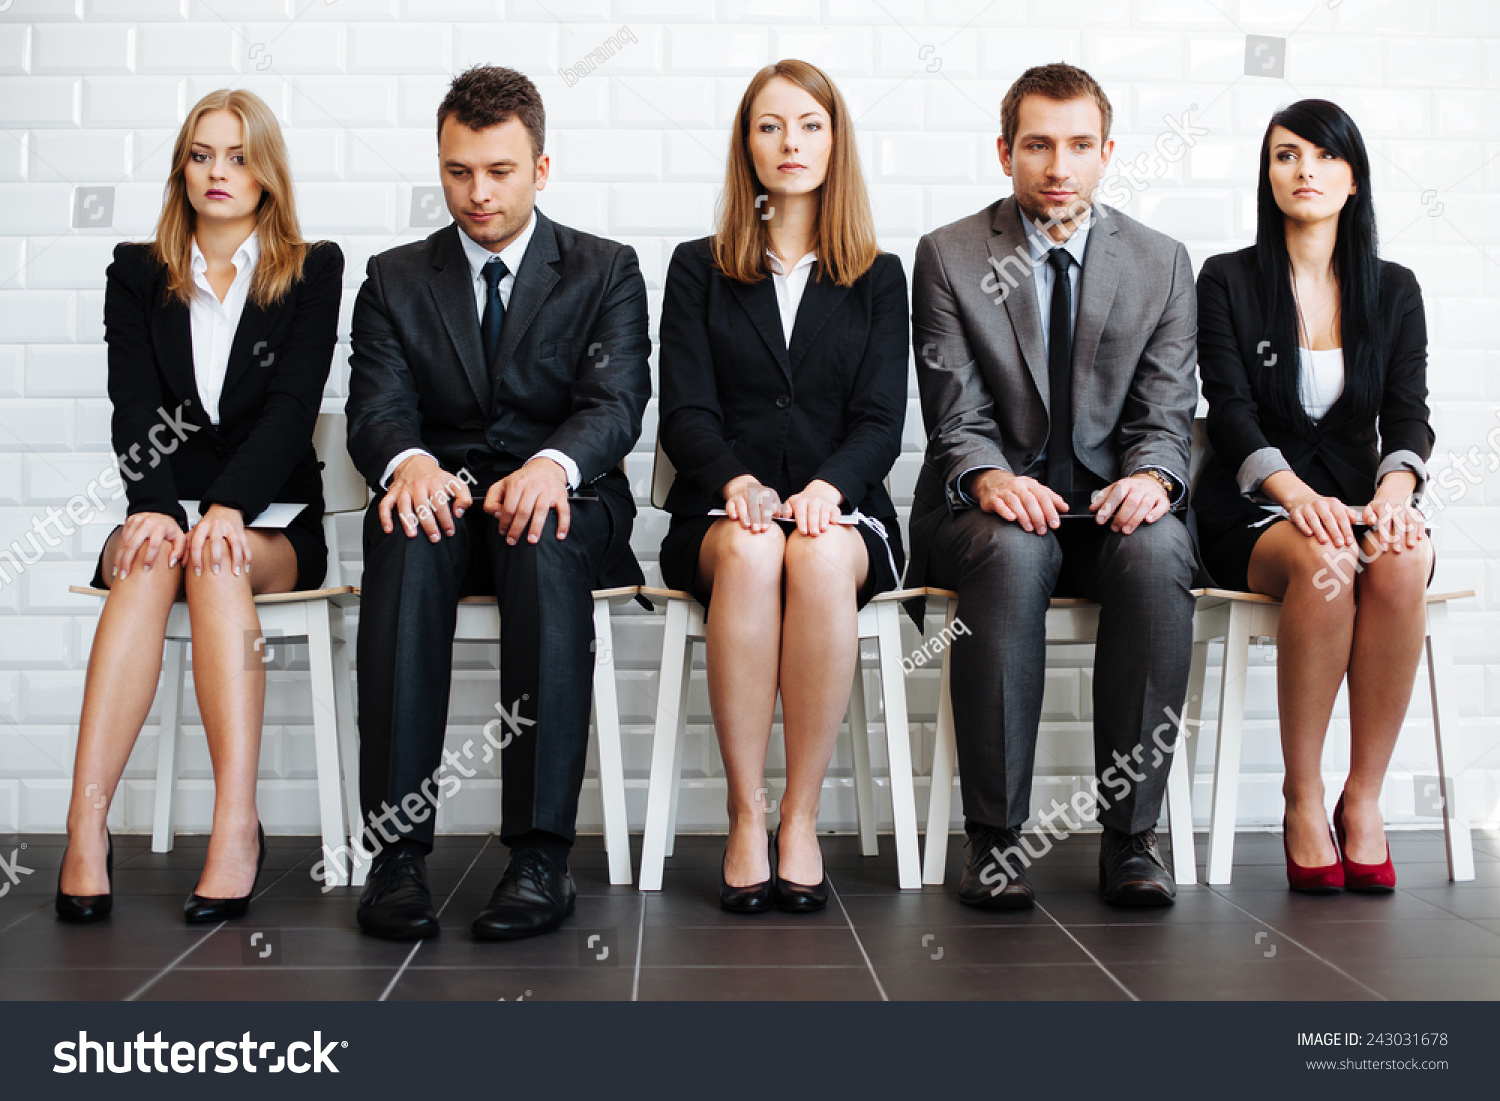 stressed business people wiating job interview stock photo stressed business people wiating for job interview